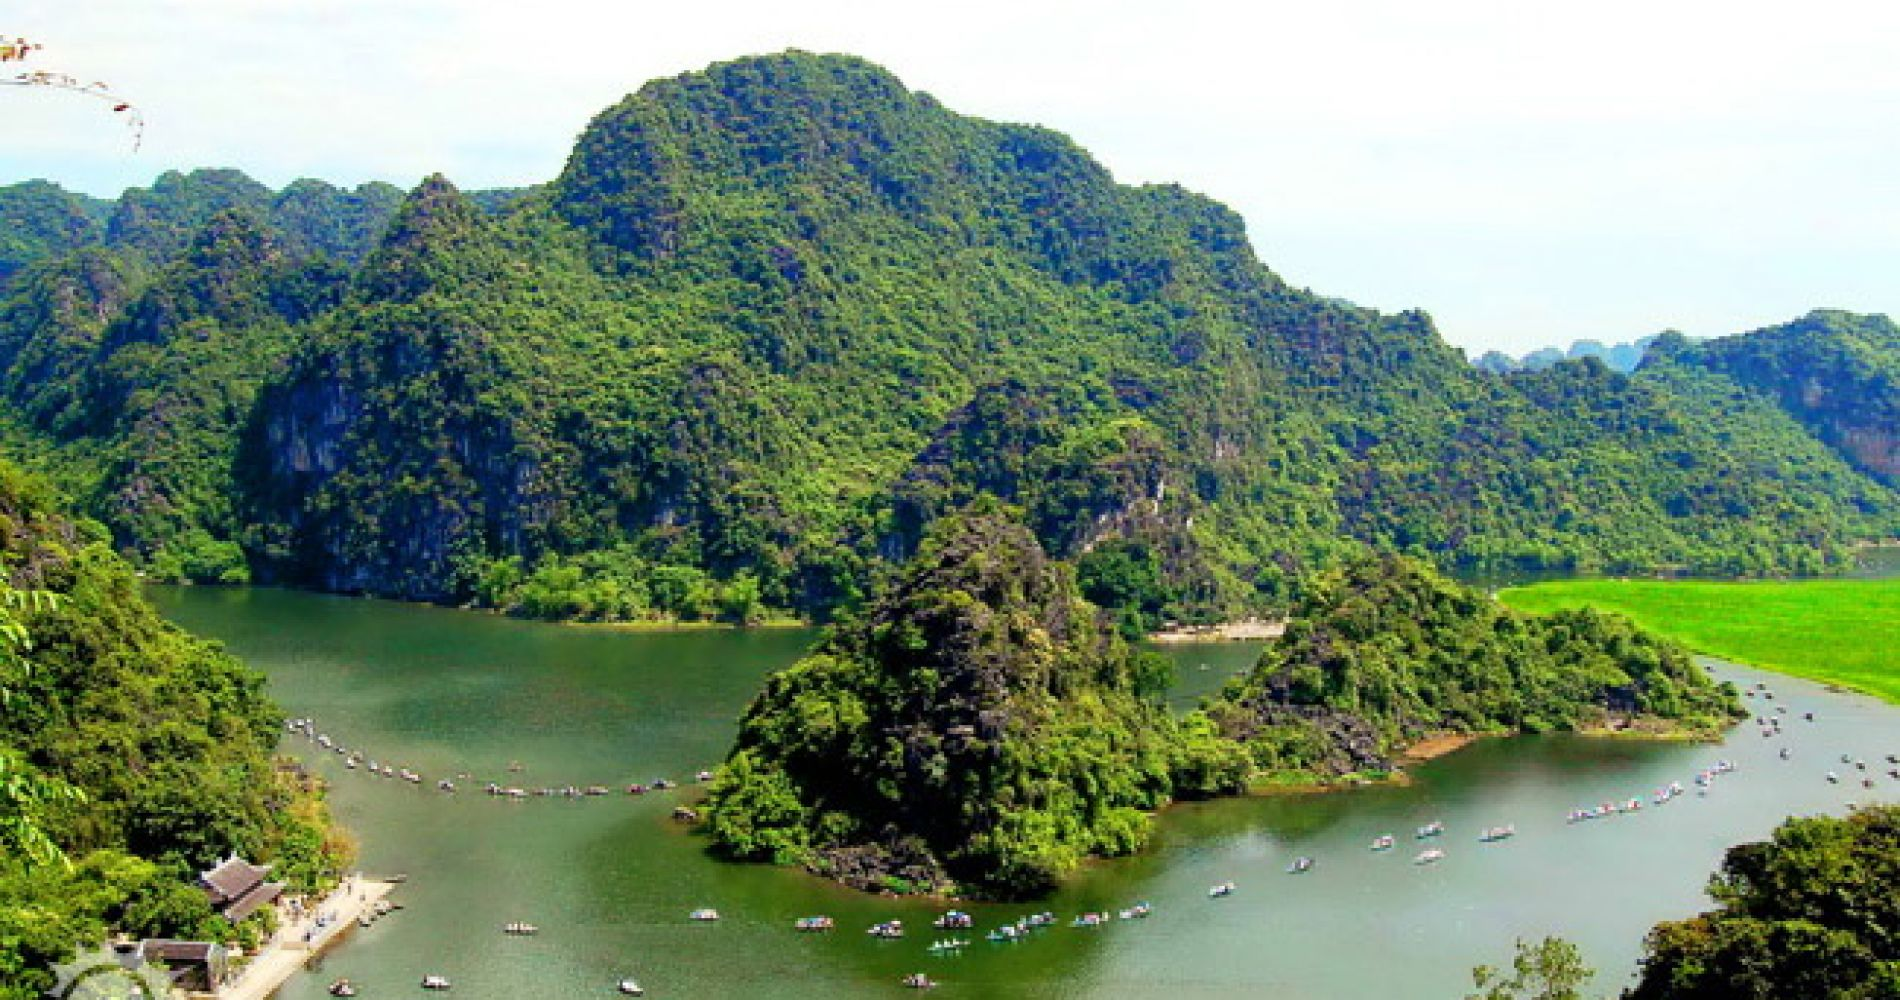 Ha Long Bay on Land, and the Citadel for Two